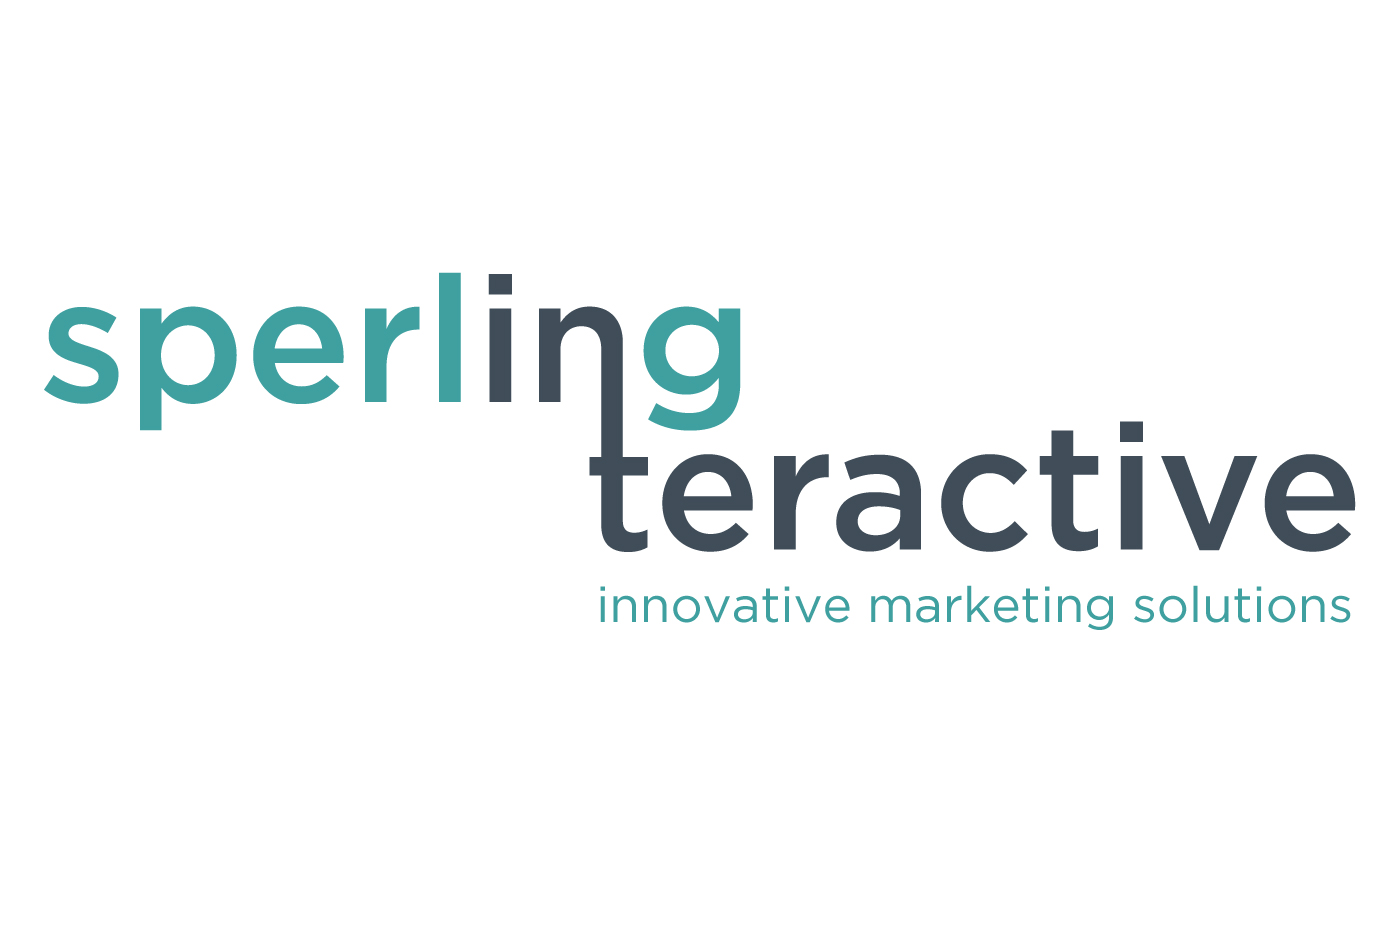 Sperling Interactive